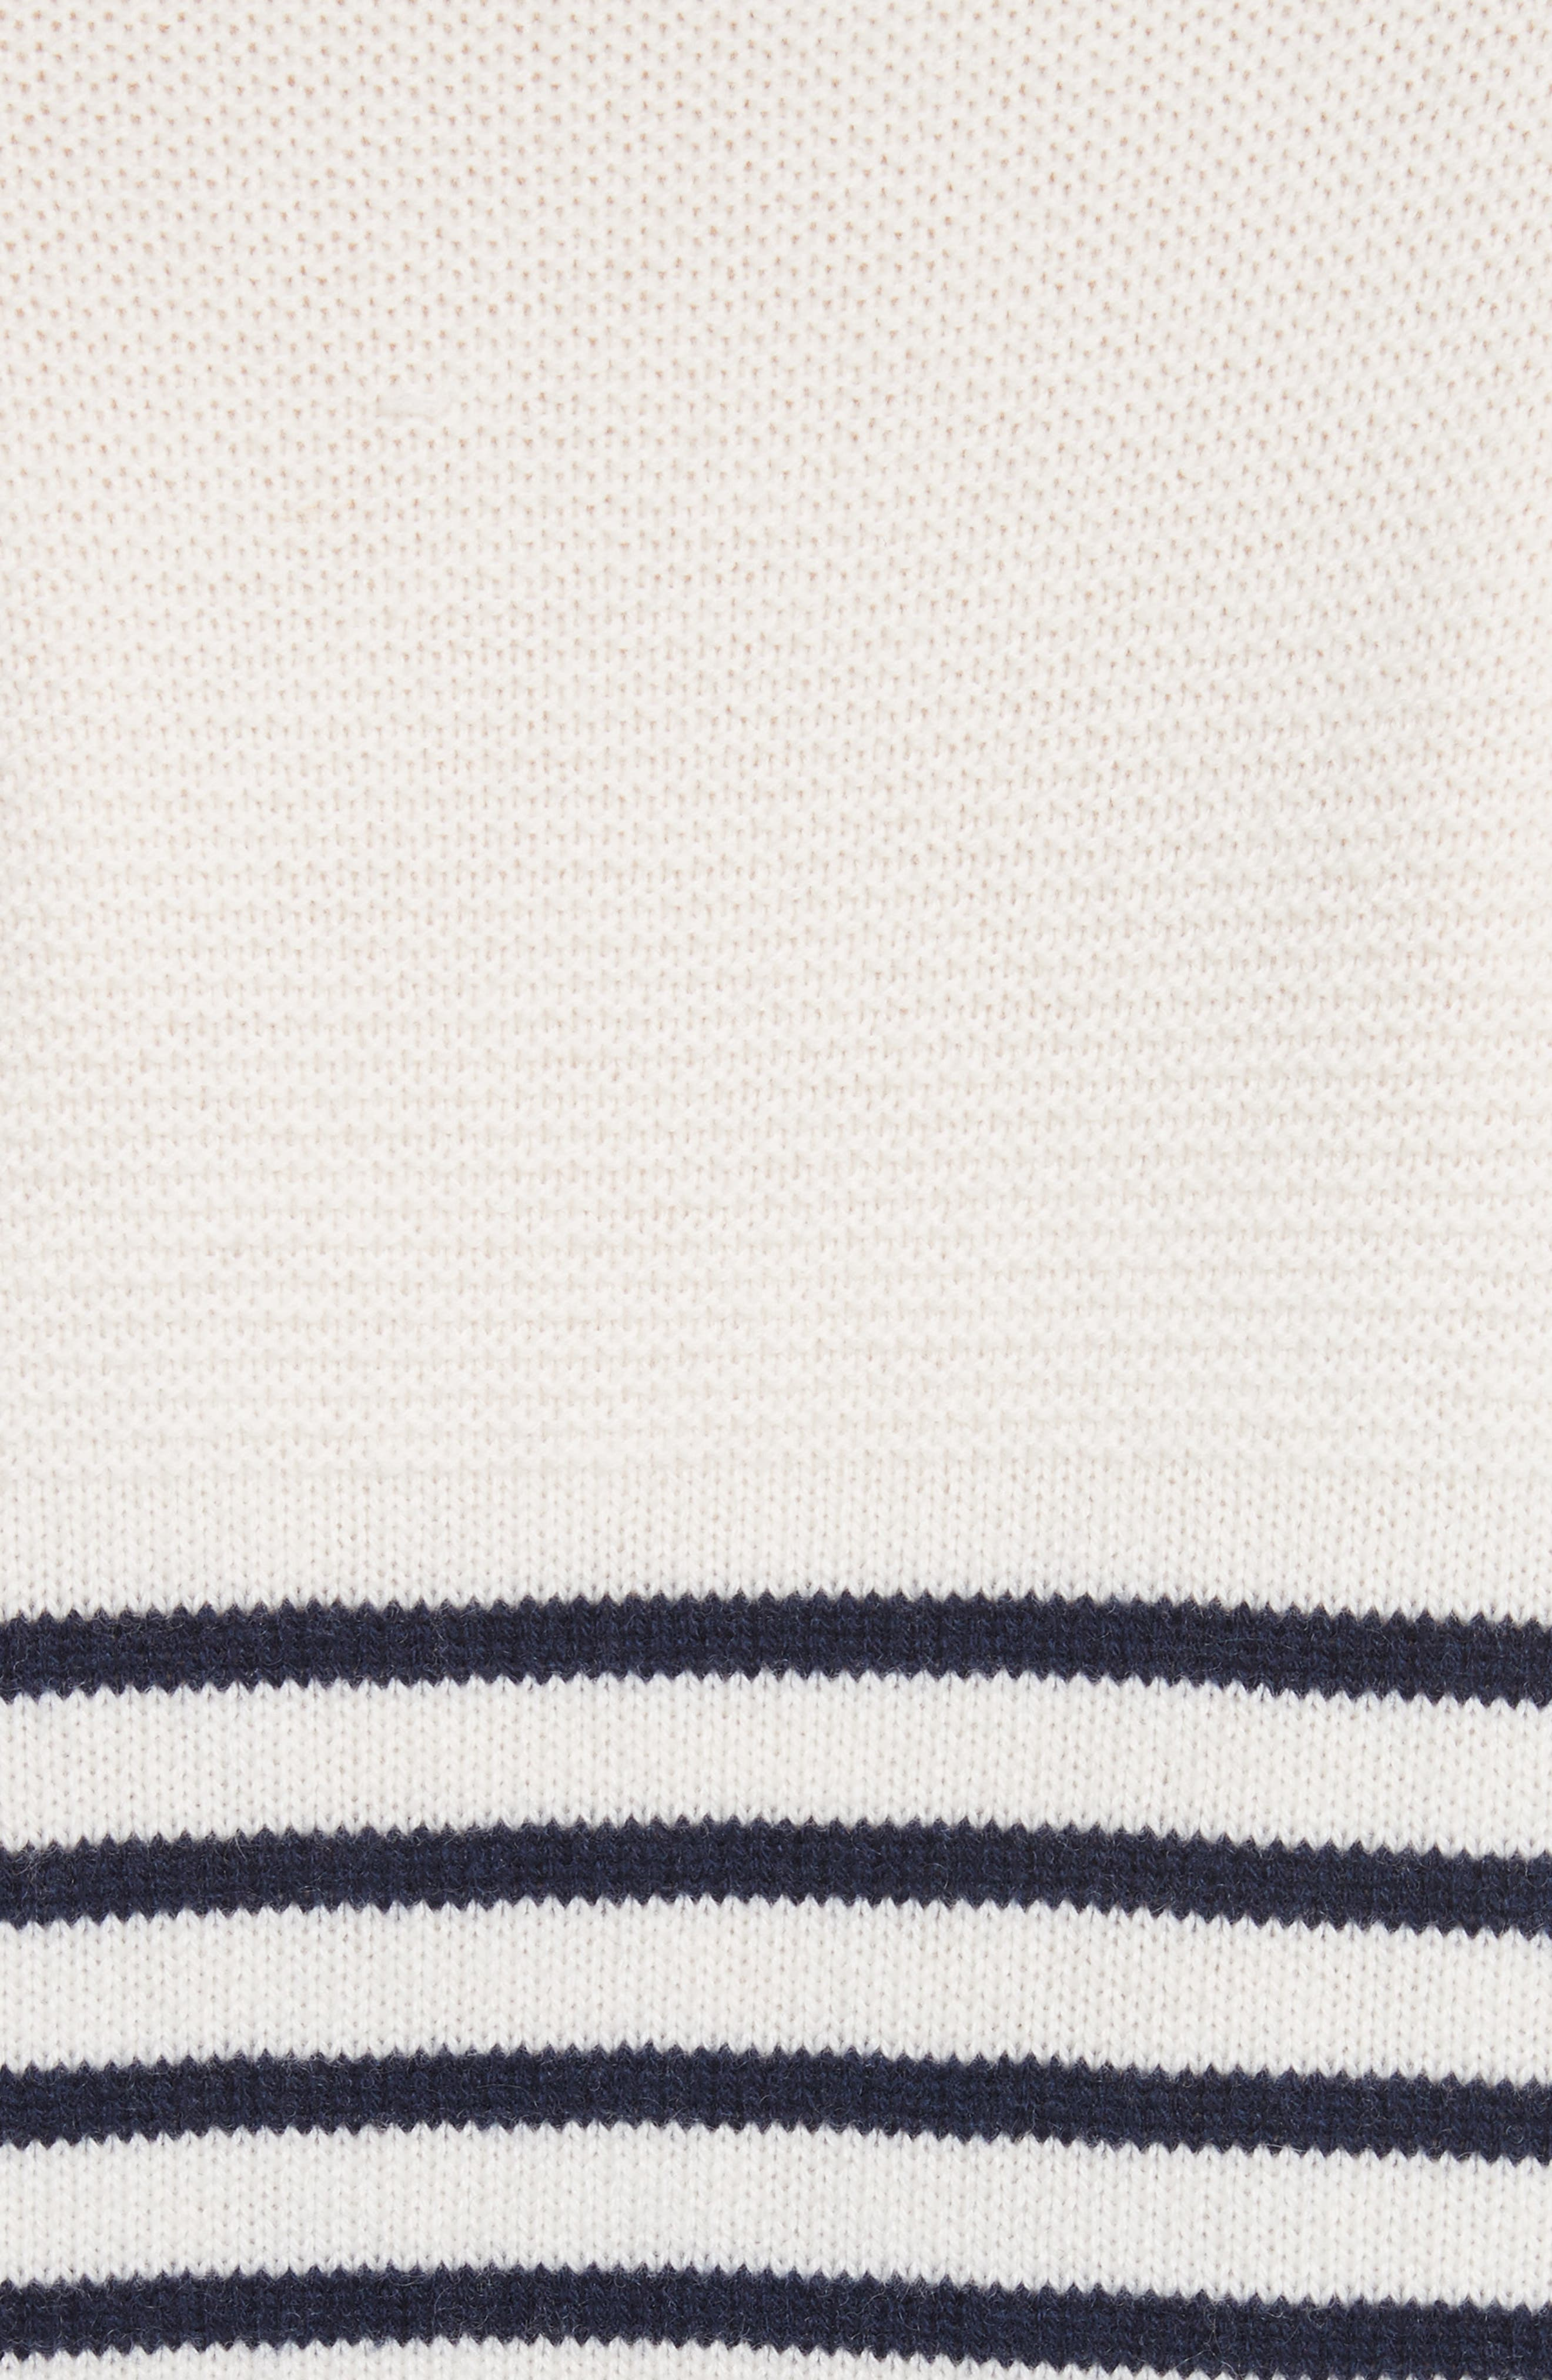 Aefre Woven Trim Wool & Cashmere Sweater,                             Alternate thumbnail 5, color,                             029